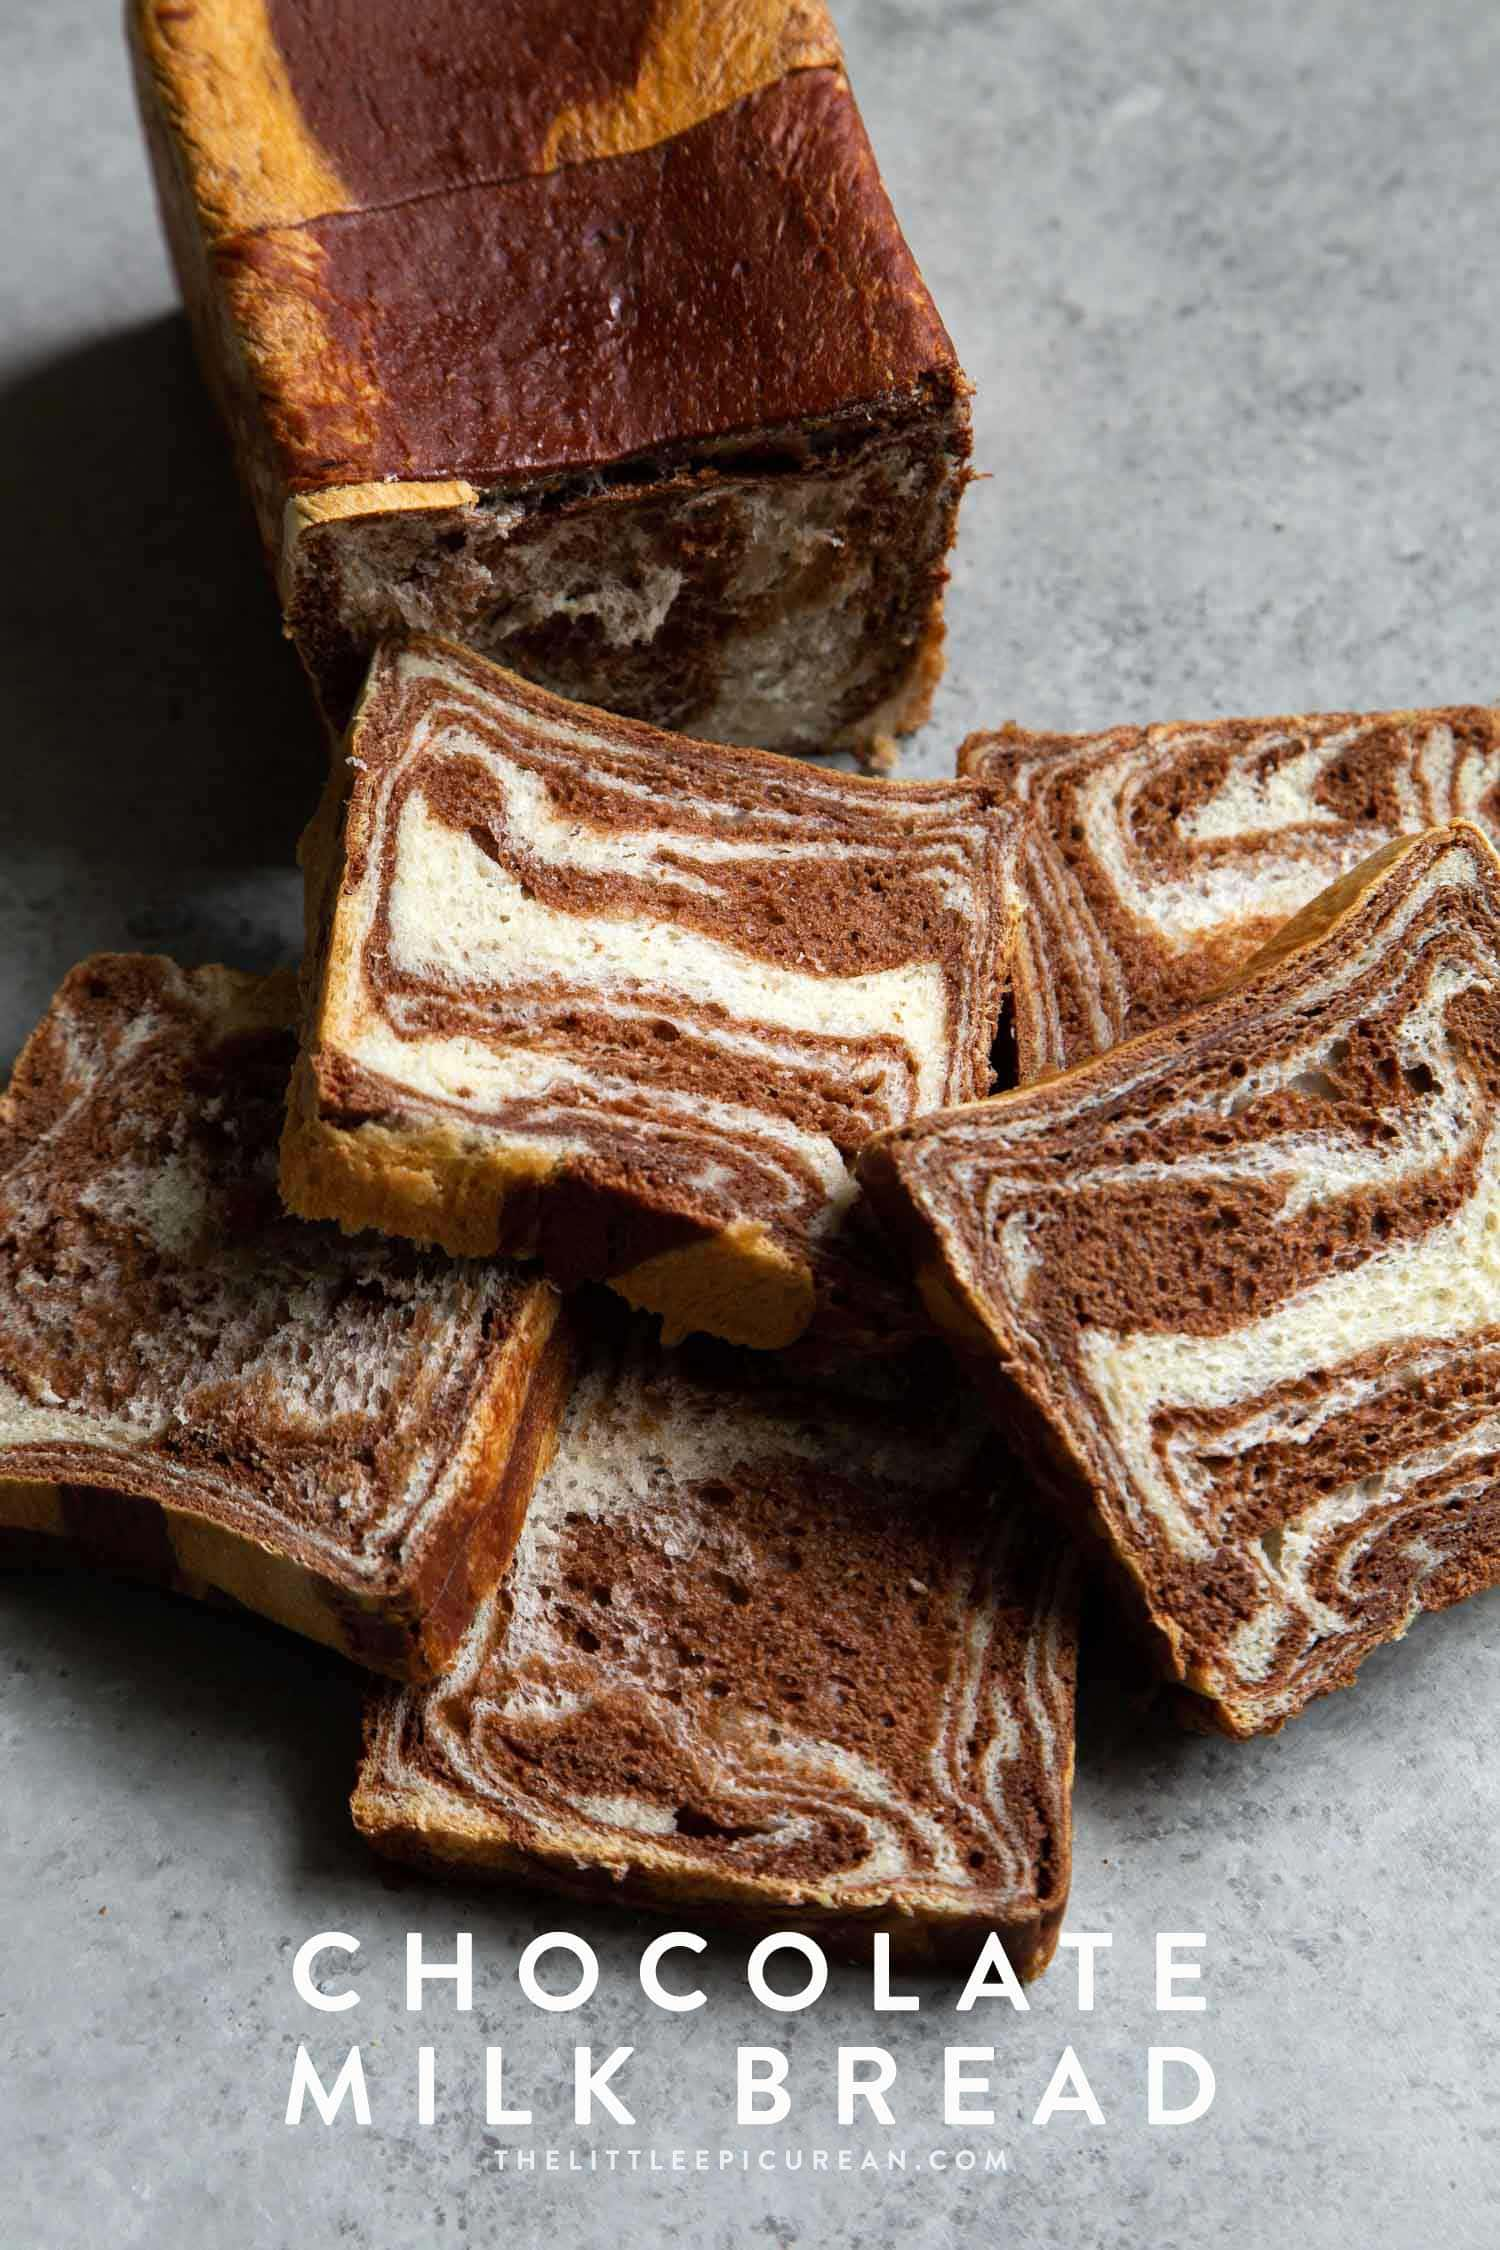 Marble Chocolate Milk Bread